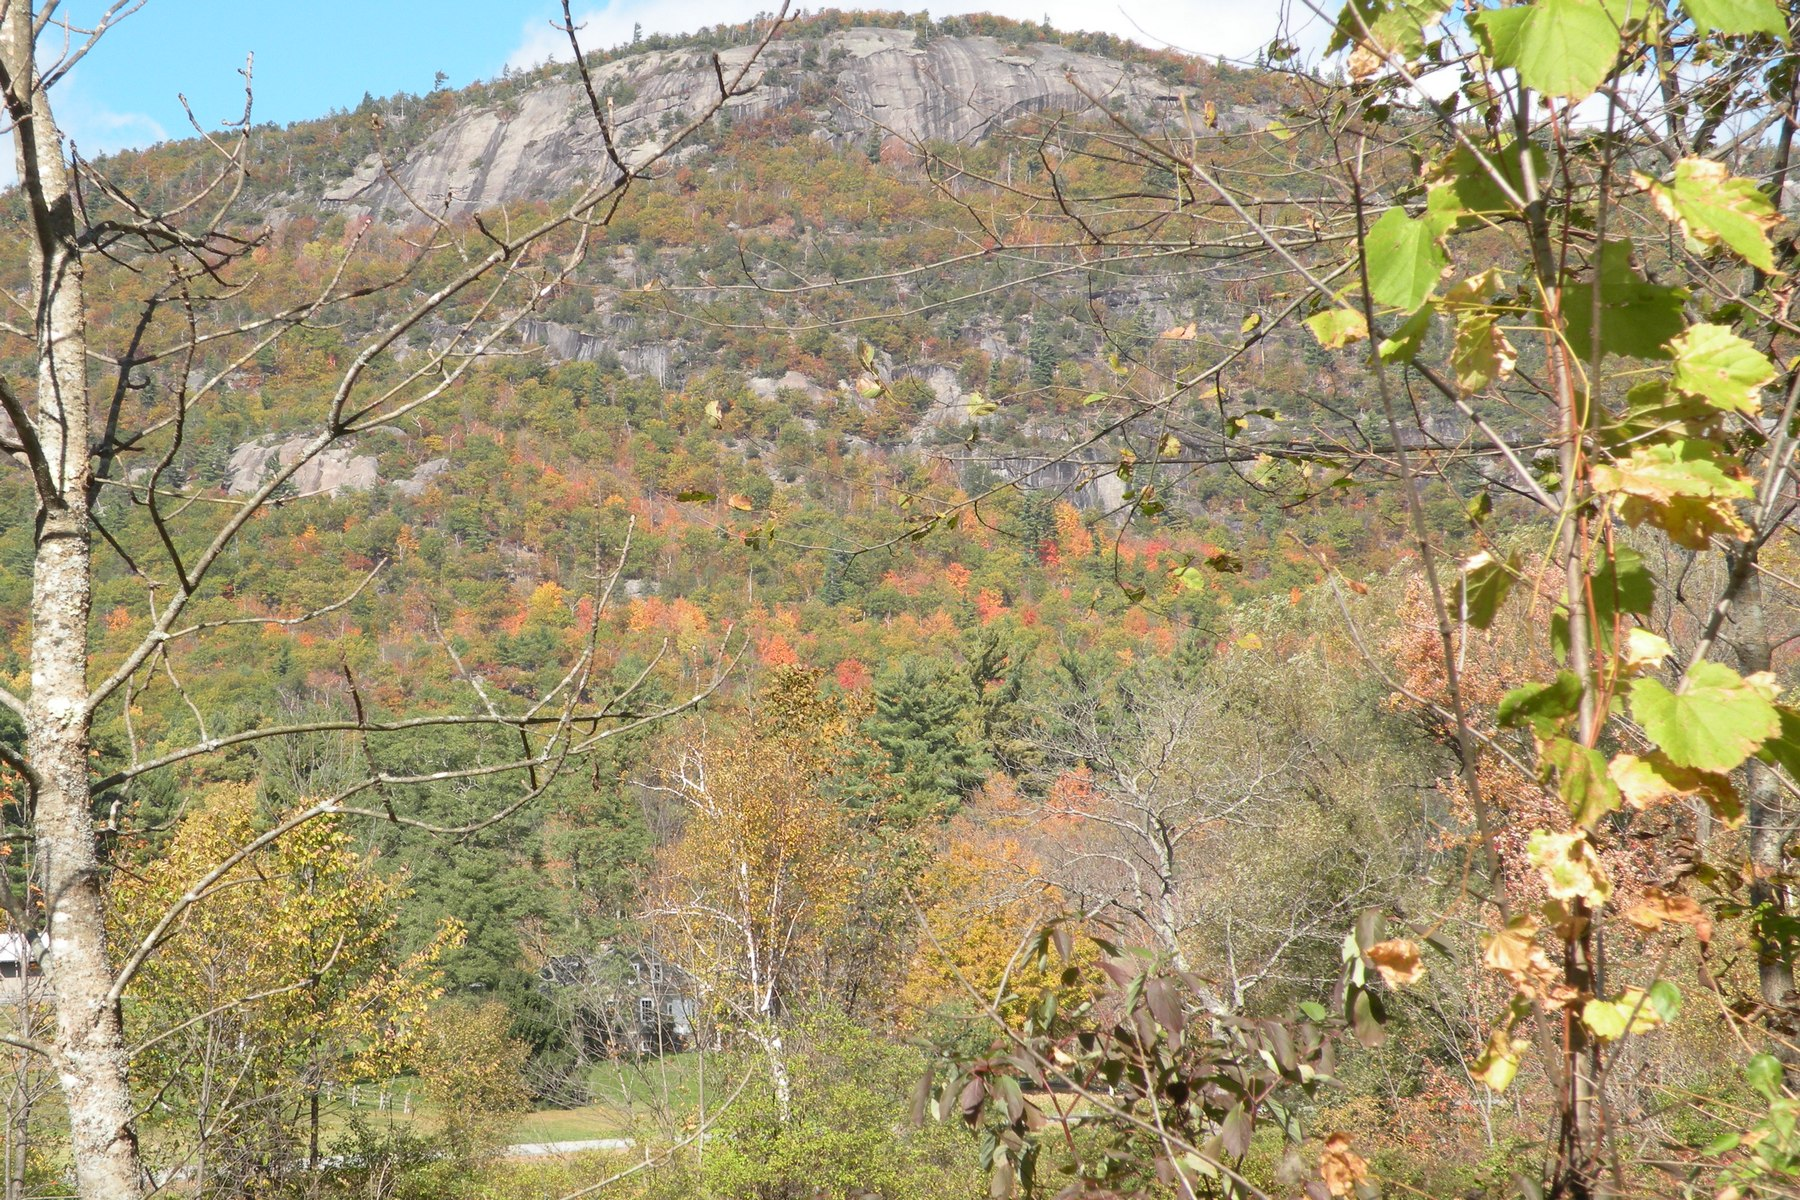 Commercial for Sale at Adirondack Getaway Building Lot 69 Trumbulls Rd Upper Jay, New York 12986 United States